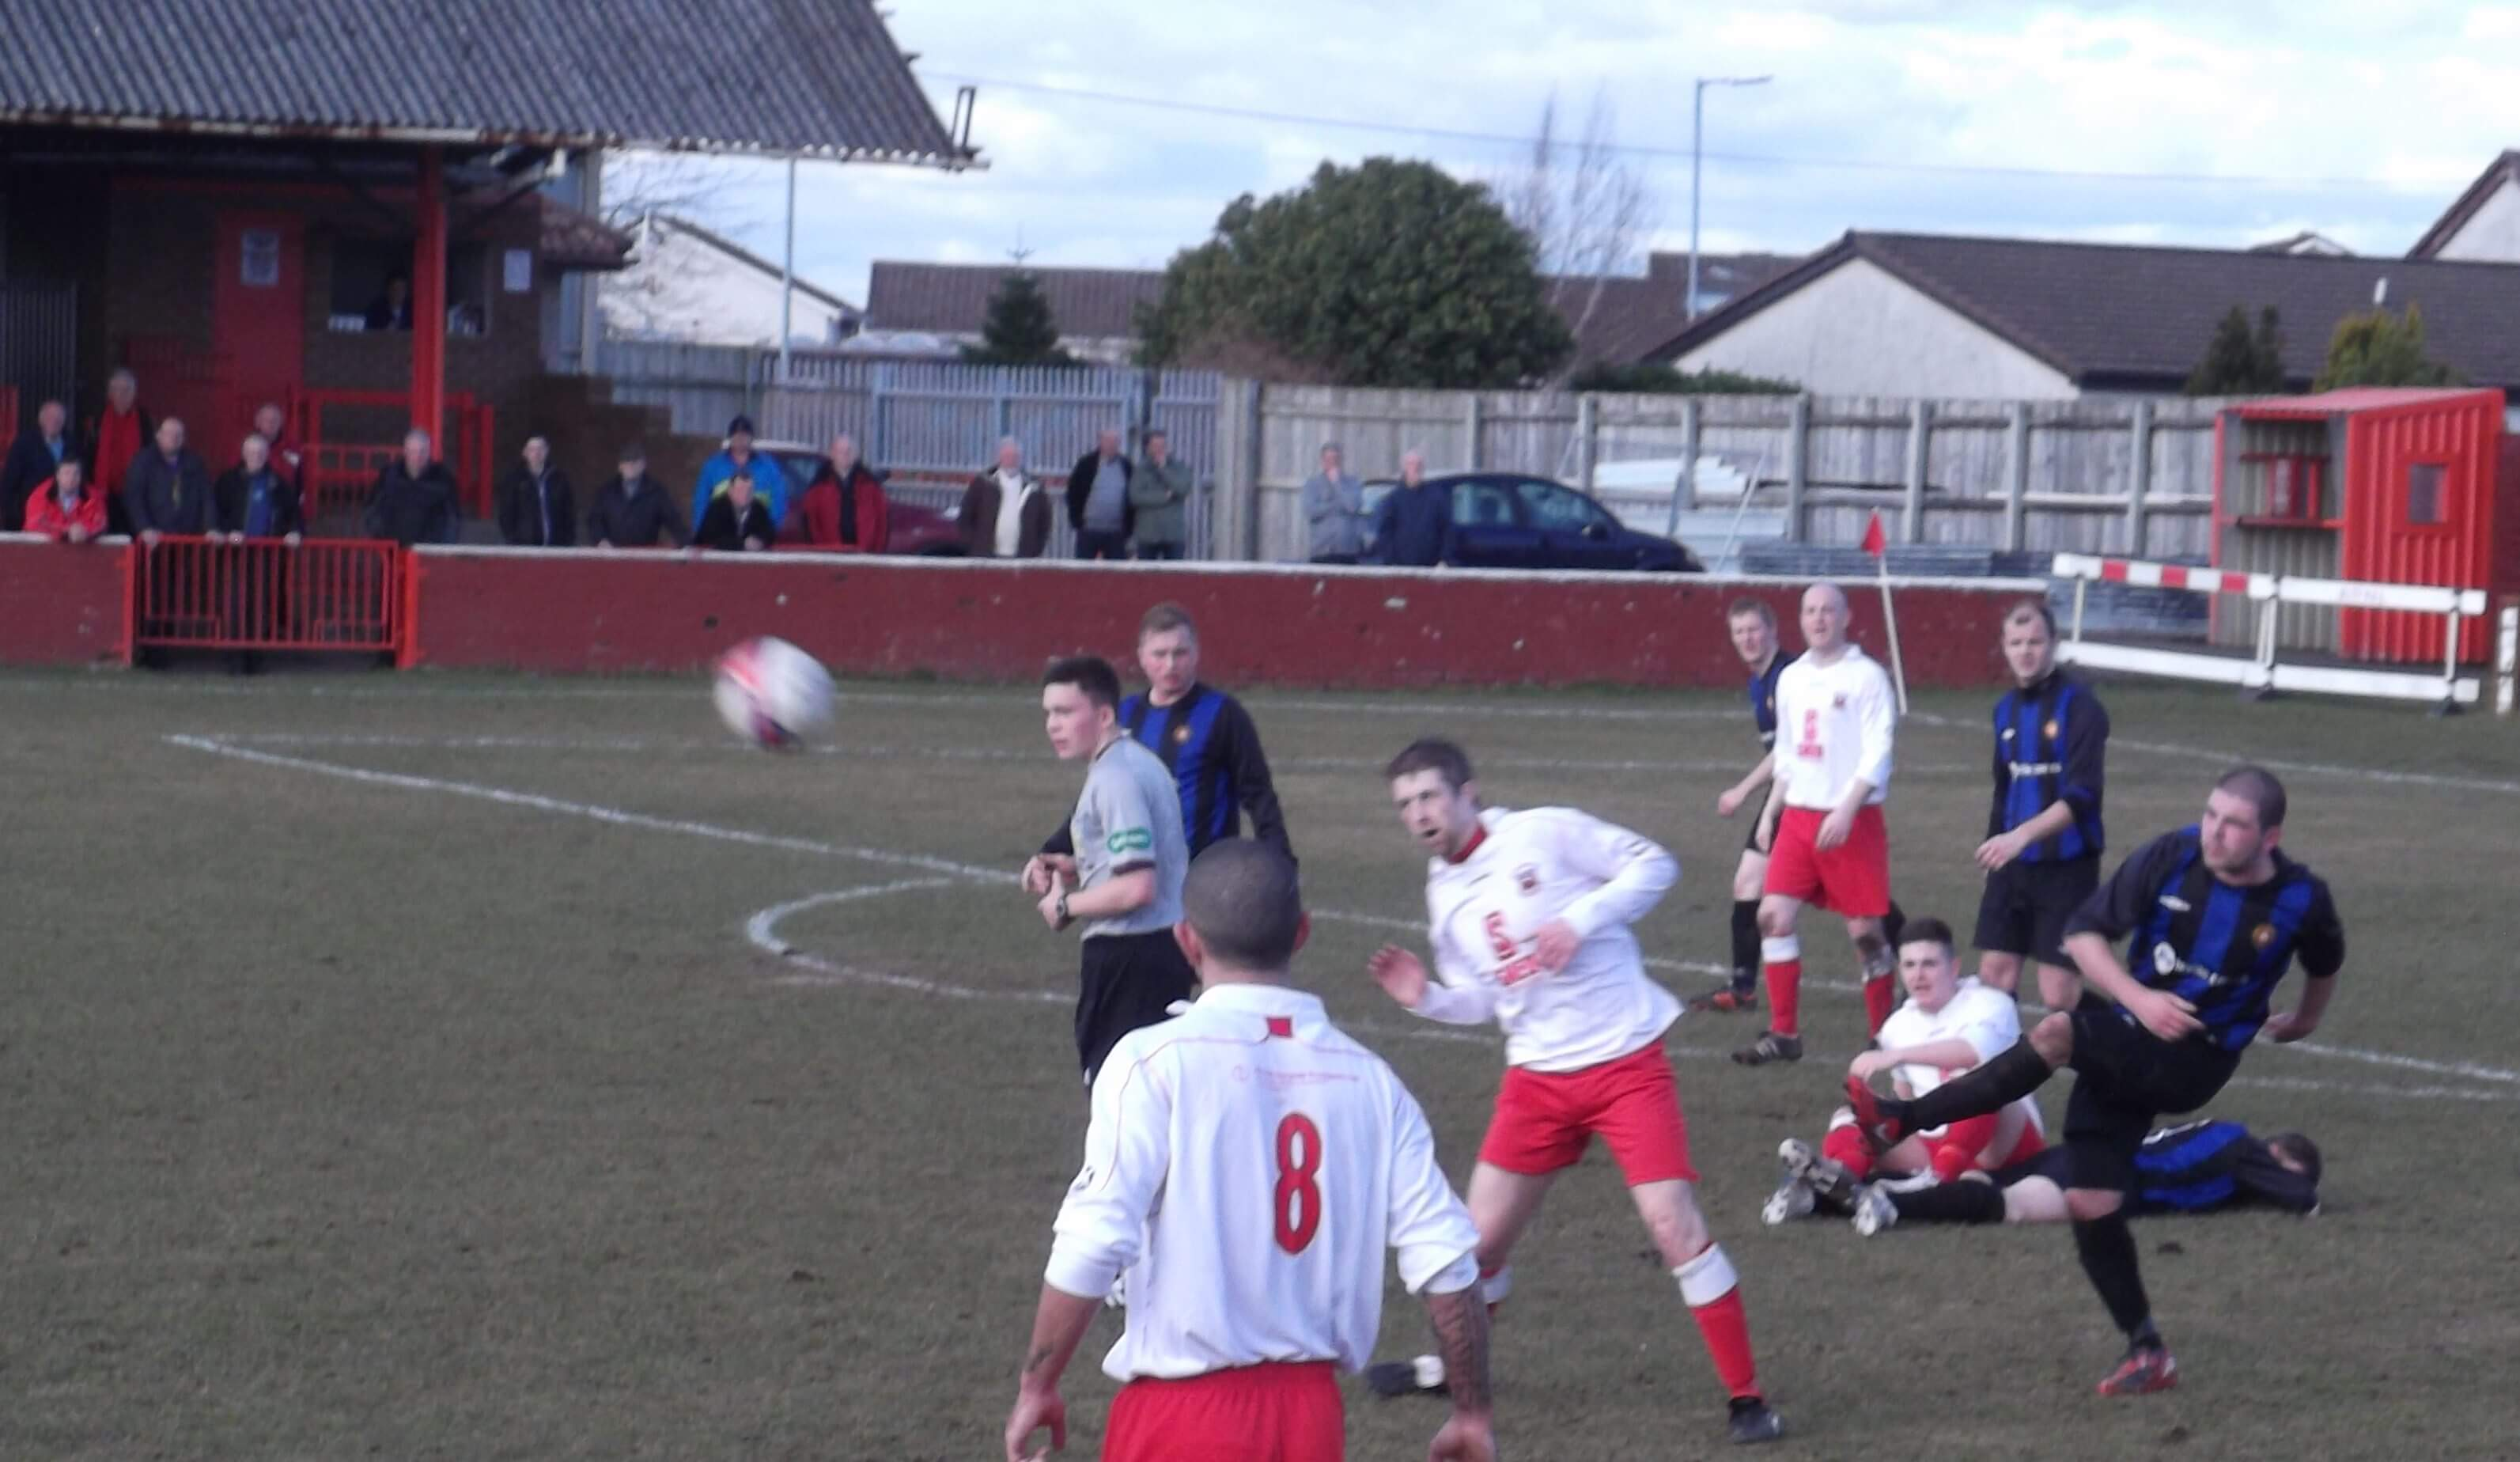 JP Grant clears for Larkhall Thistle as Fleming and Kelly look on